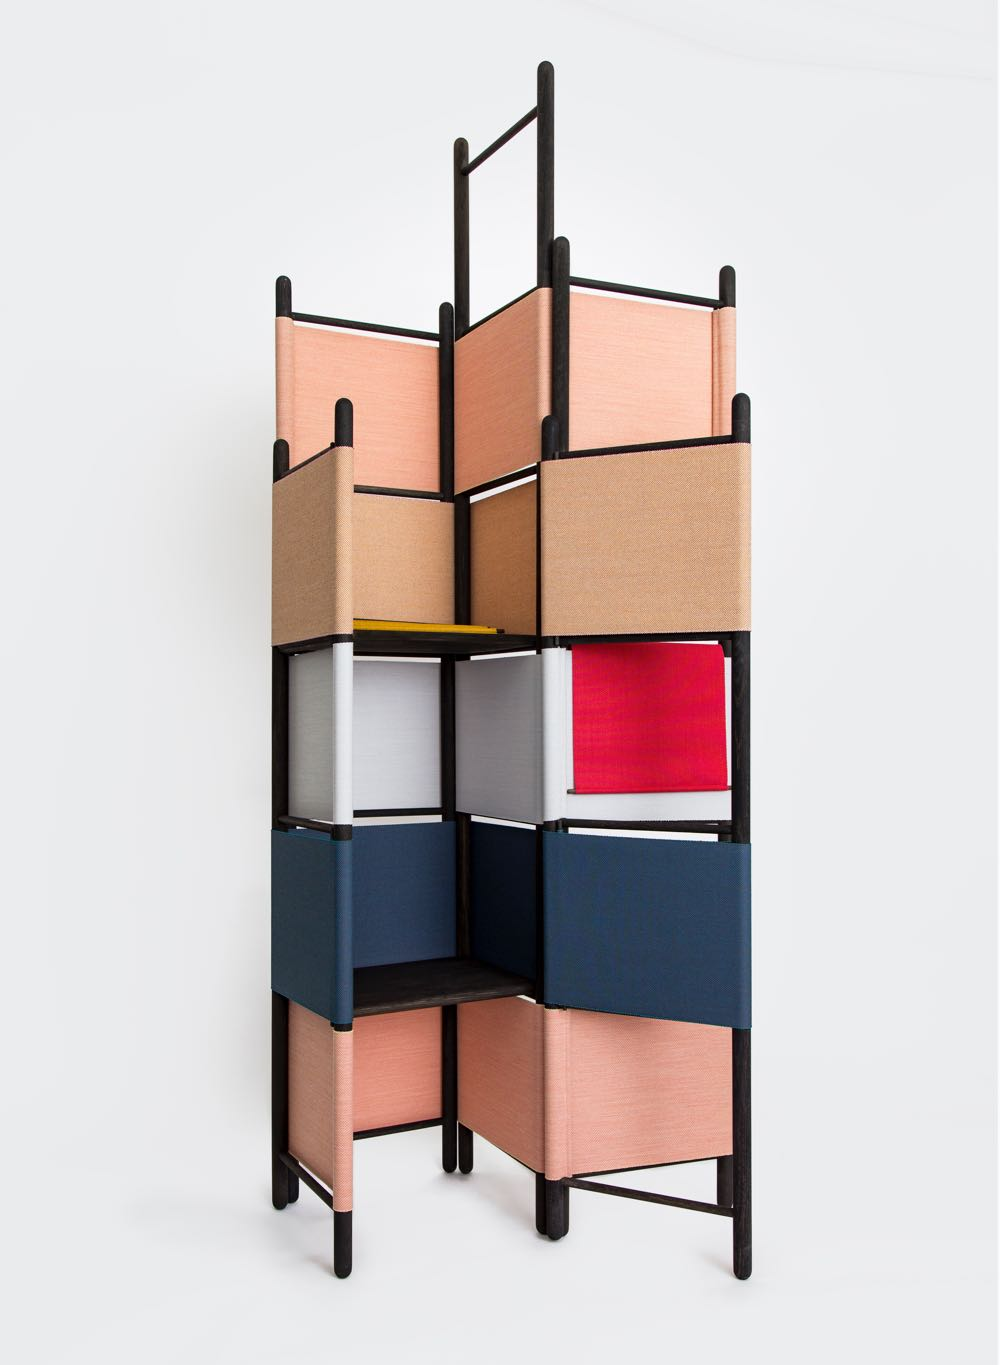 Rive Roshan's 'Loom Bound' screen in black with Kvadrat fabric. The frame is held together and in position by the tightly wrapped fabric. It offers small shelf compartments as well as acting as a room divider / screen.